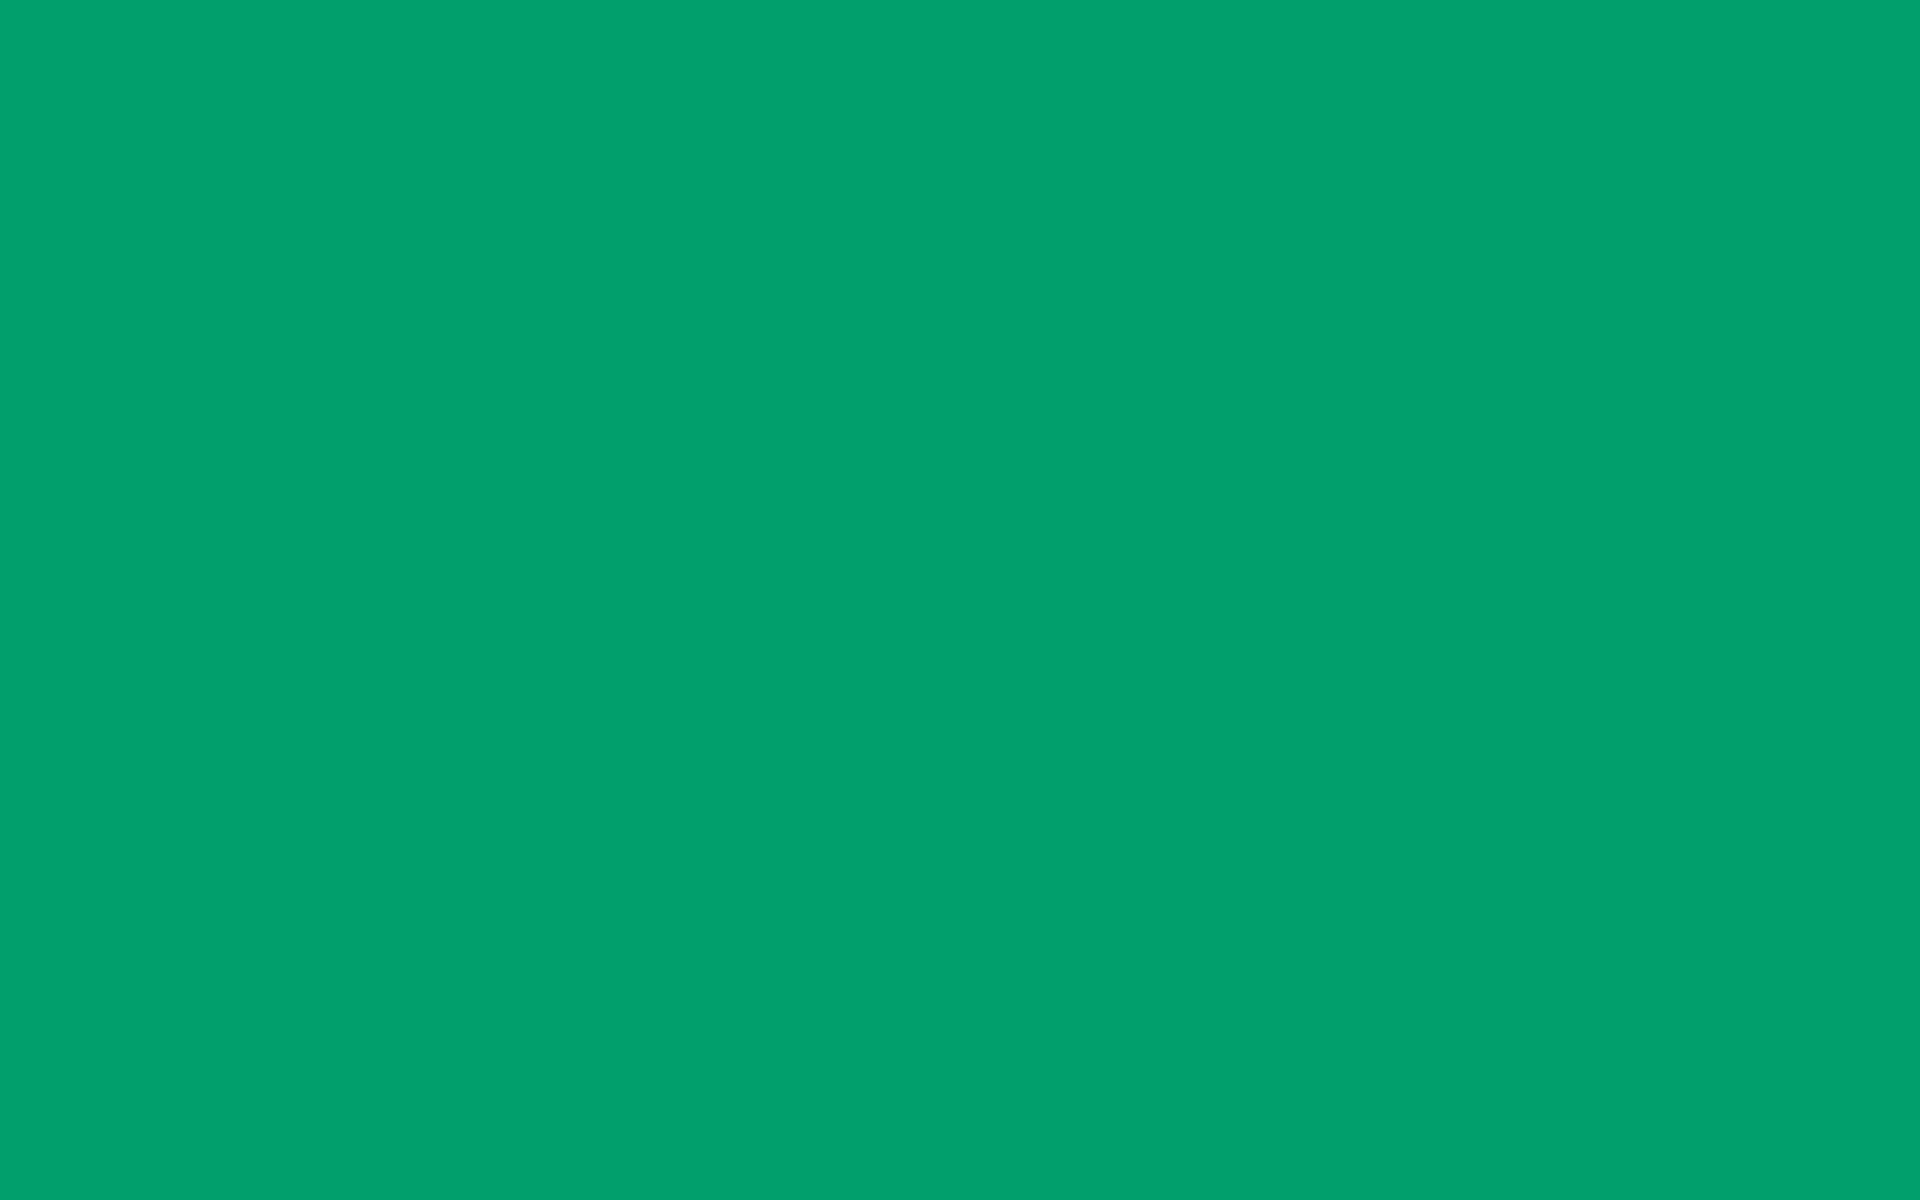 1920x1200 Green NCS Solid Color Background